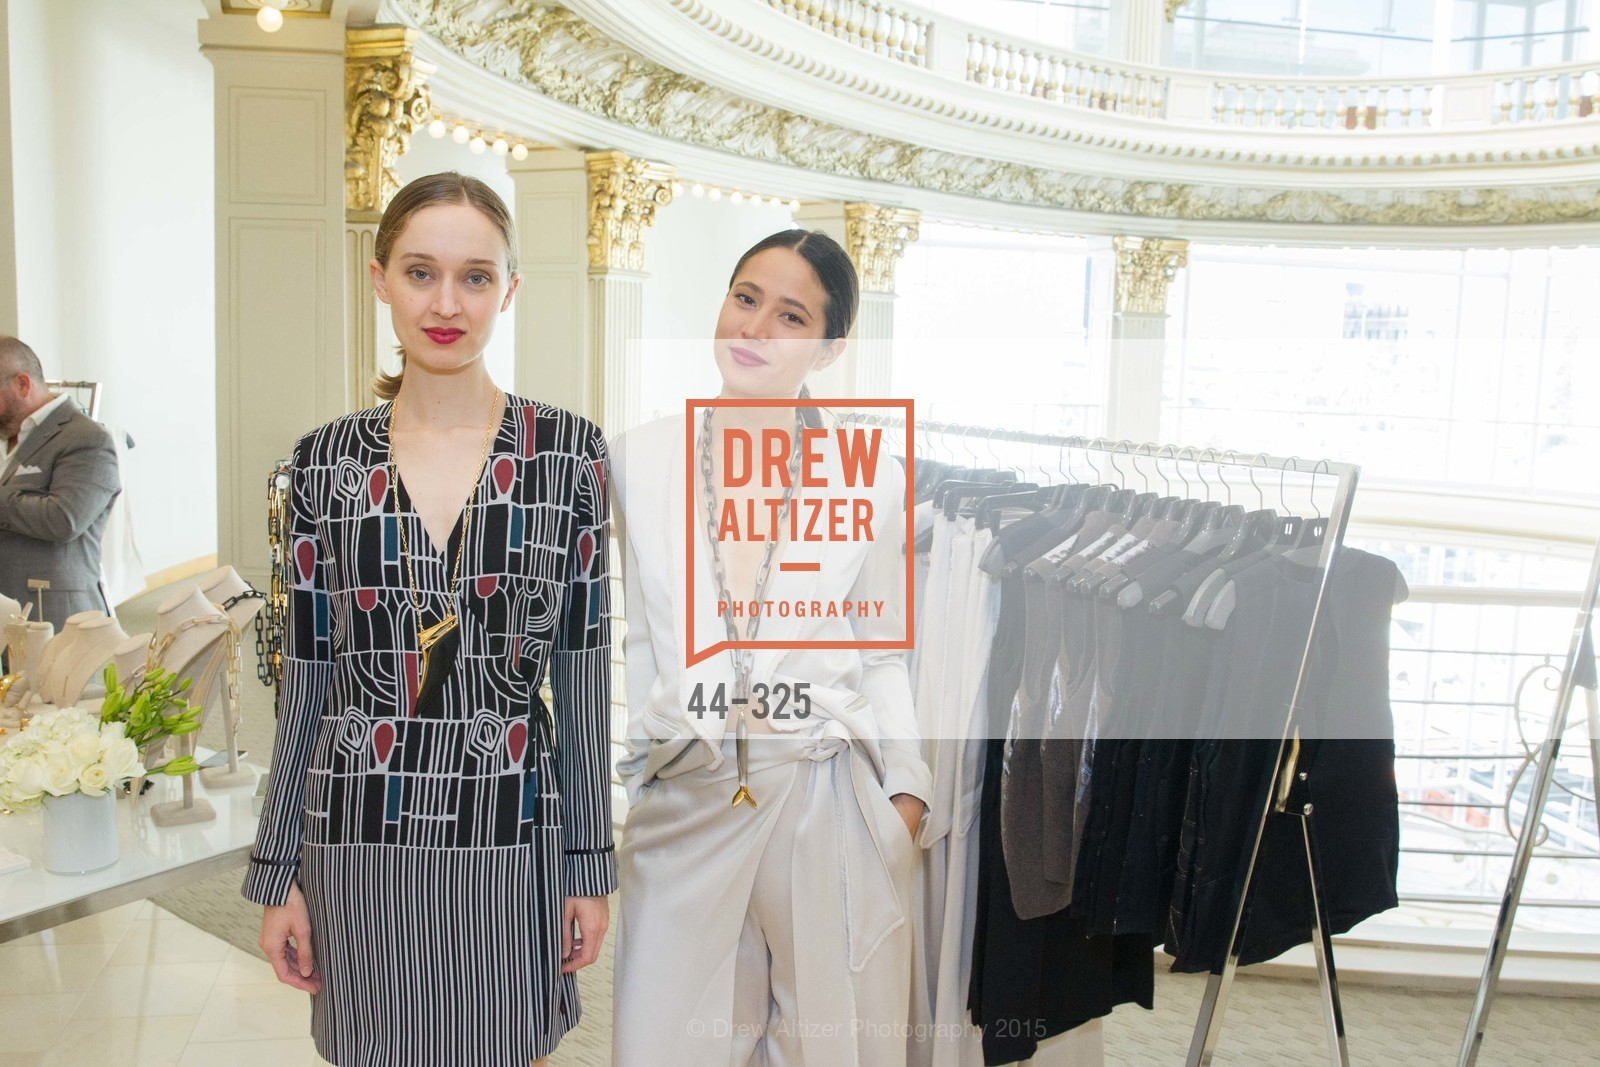 Models, Maiyet Reception at Neiman Marcus, Neiman Marcus, September 29th, 2015,Drew Altizer, Drew Altizer Photography, full-service event agency, private events, San Francisco photographer, photographer California